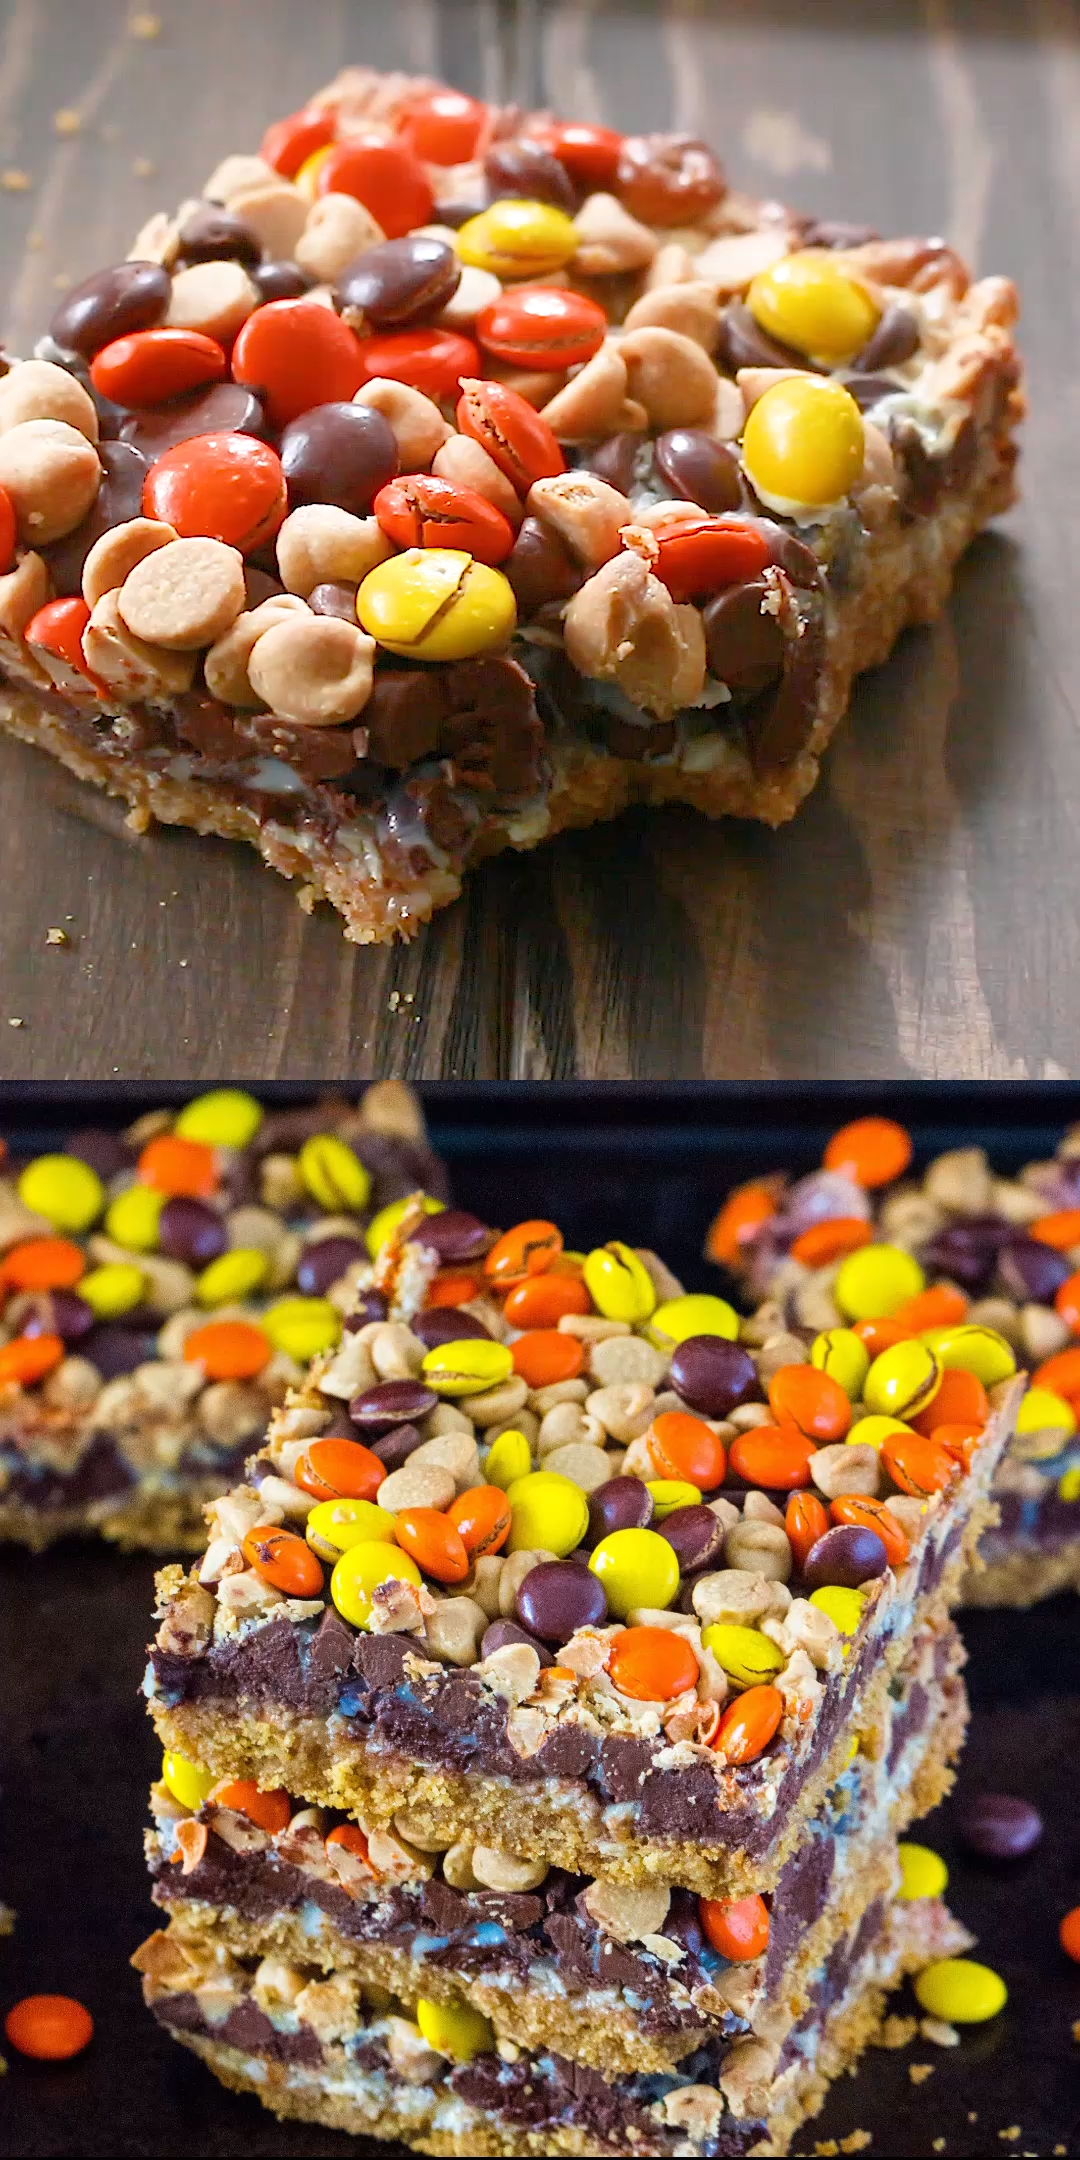 24 desserts Bars videos ideas